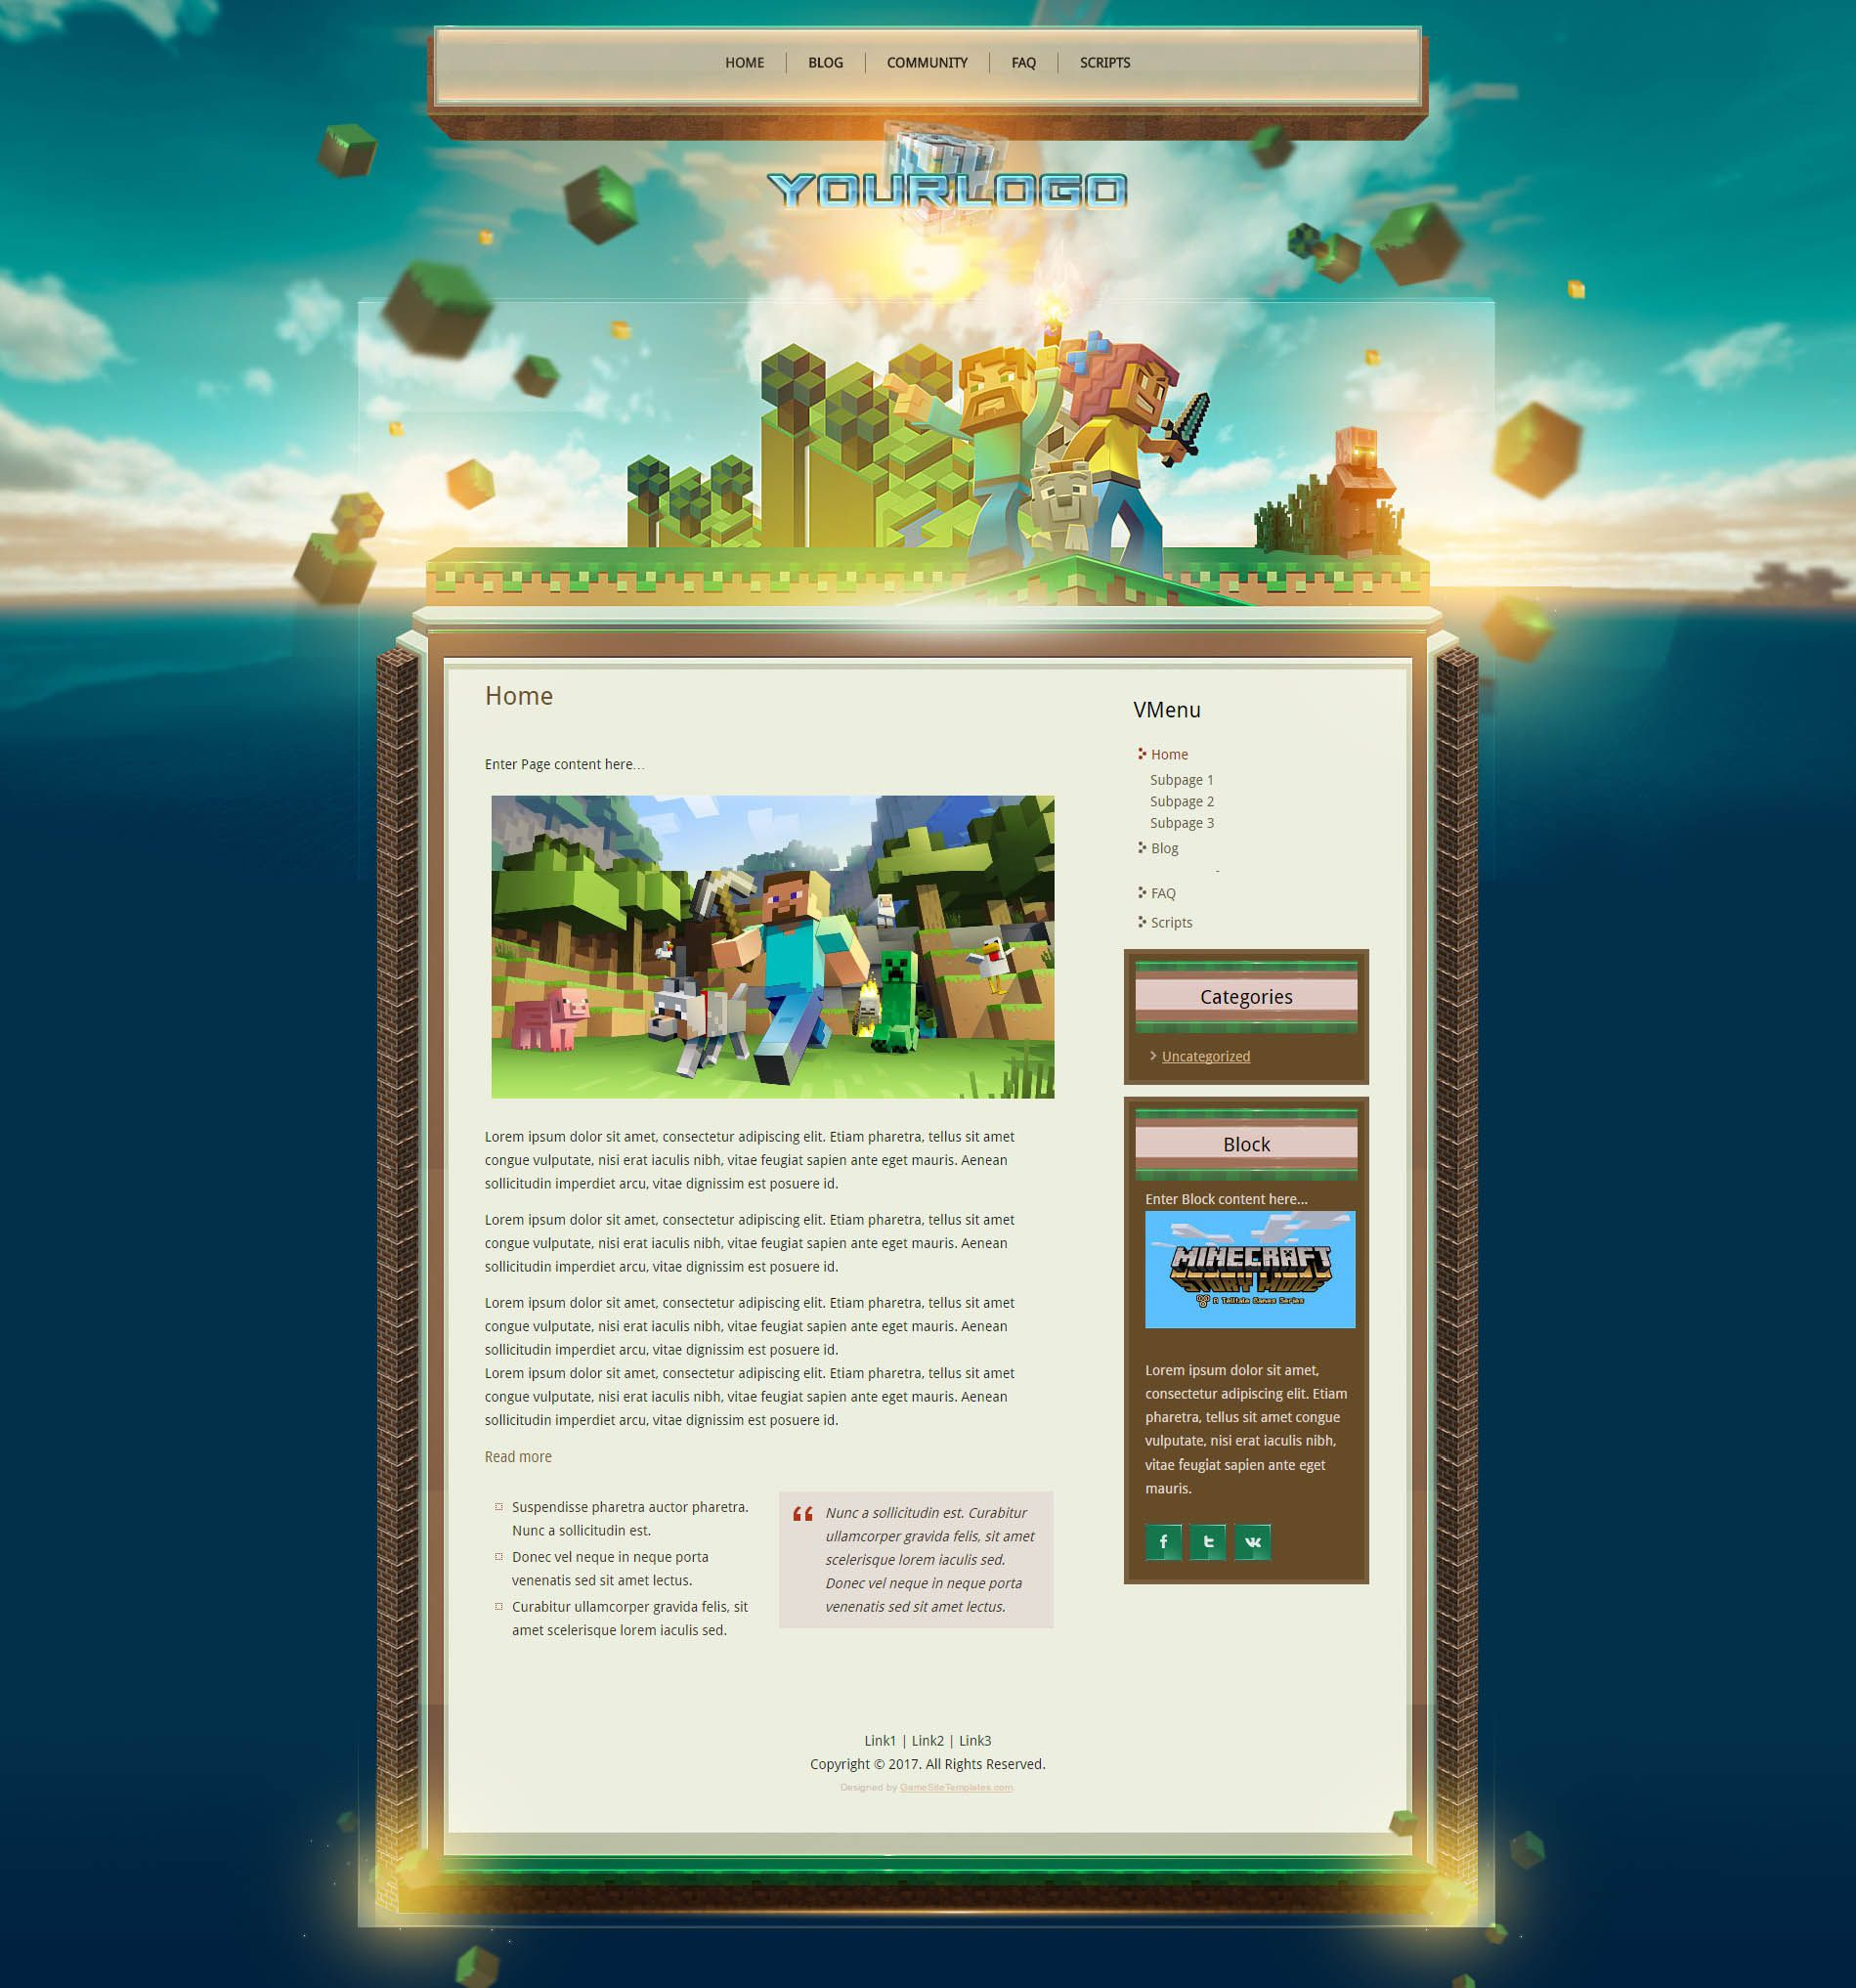 007 Imposing Minecraft Website Template Html Free Download Image Full